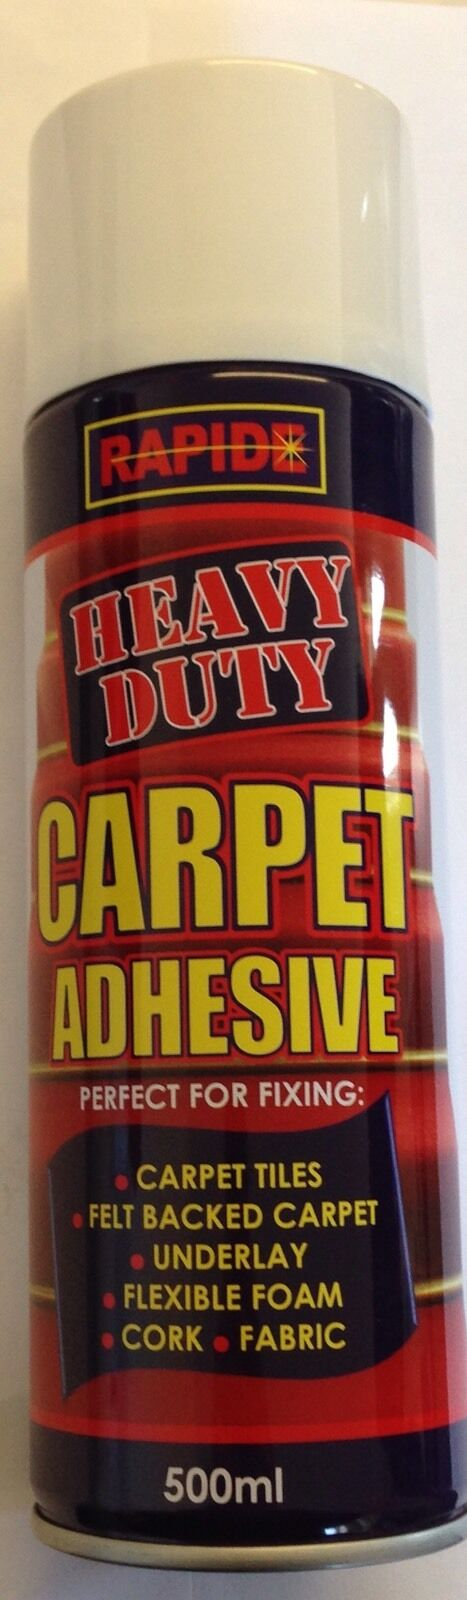 500ml Carpet Adhesive Glue Heavy Duty All Purpose House Tiles Fabric Glue